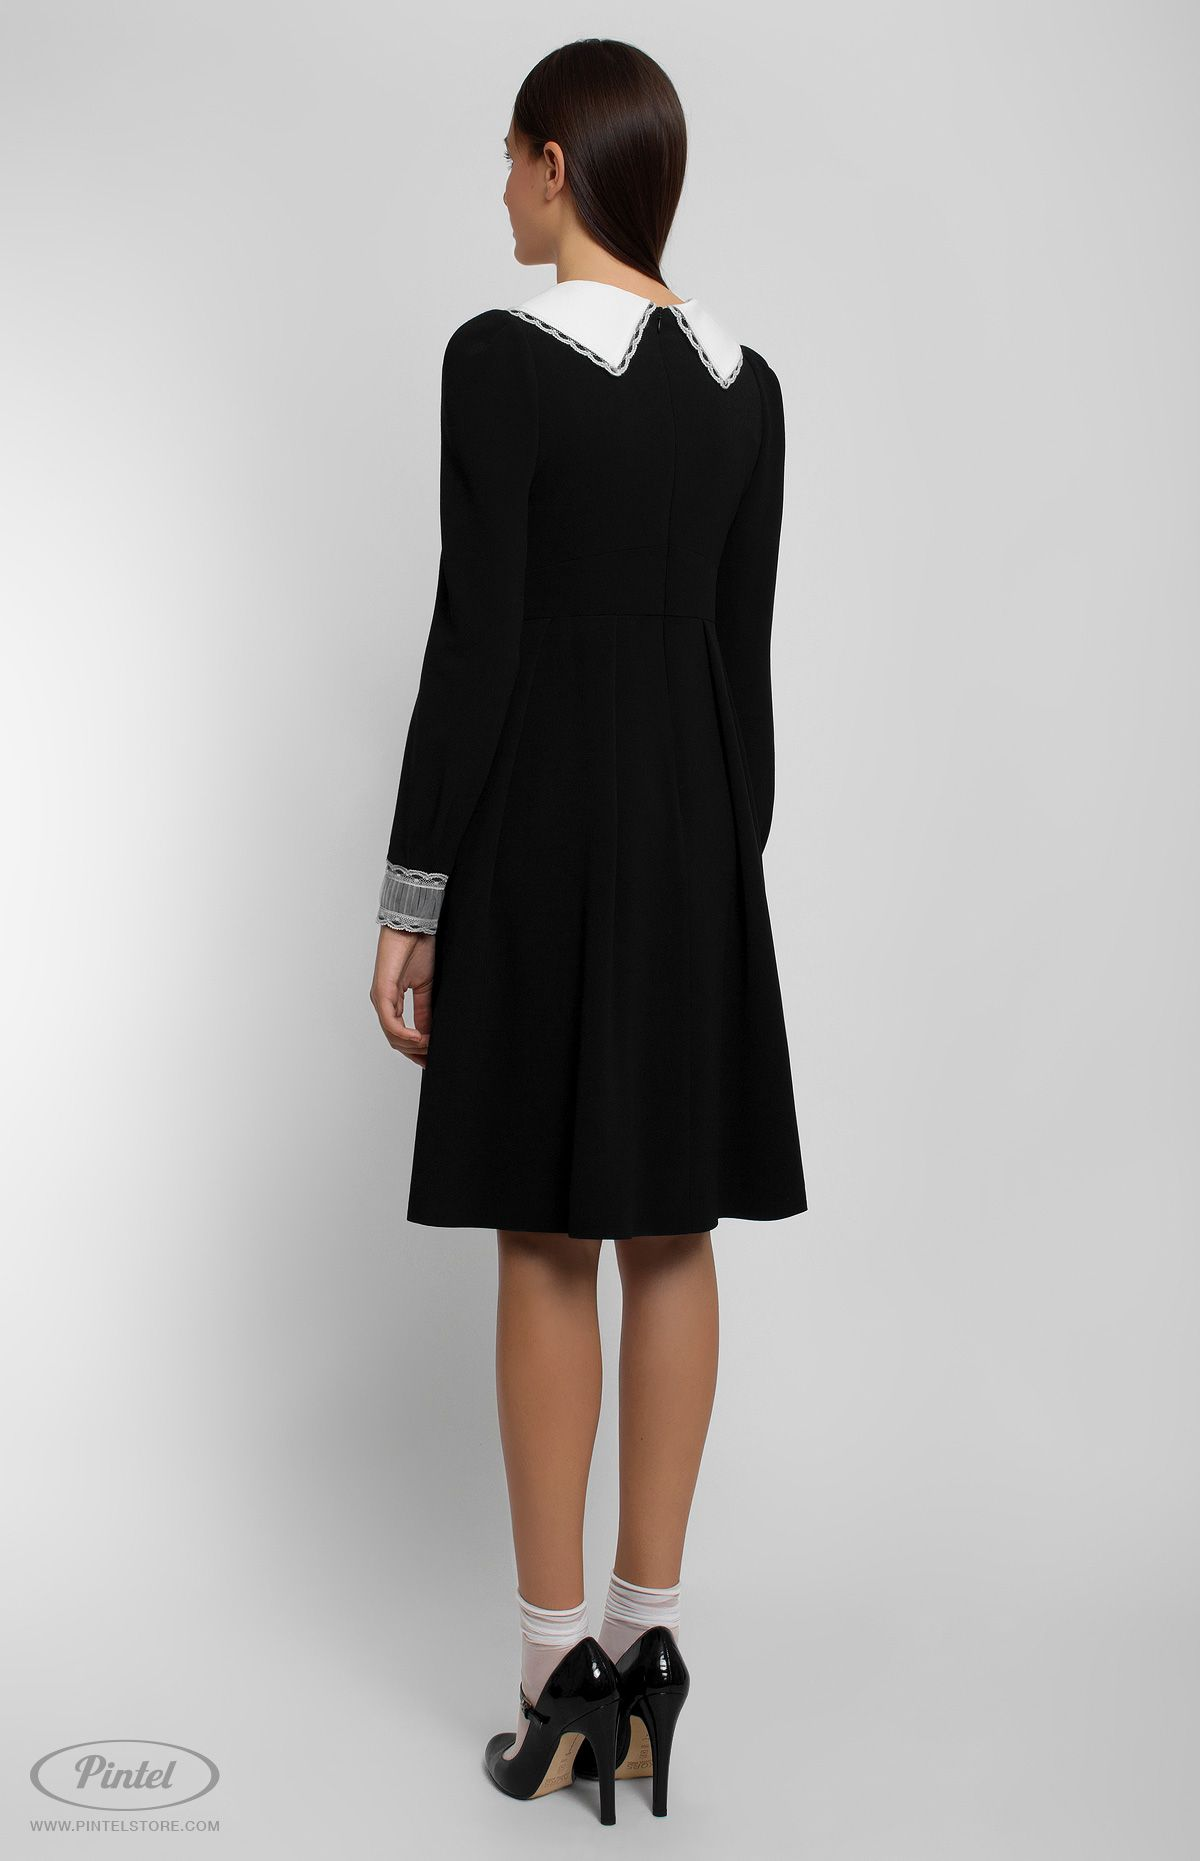 Longsleeve slimfit black dress decorated with lace and ribbon